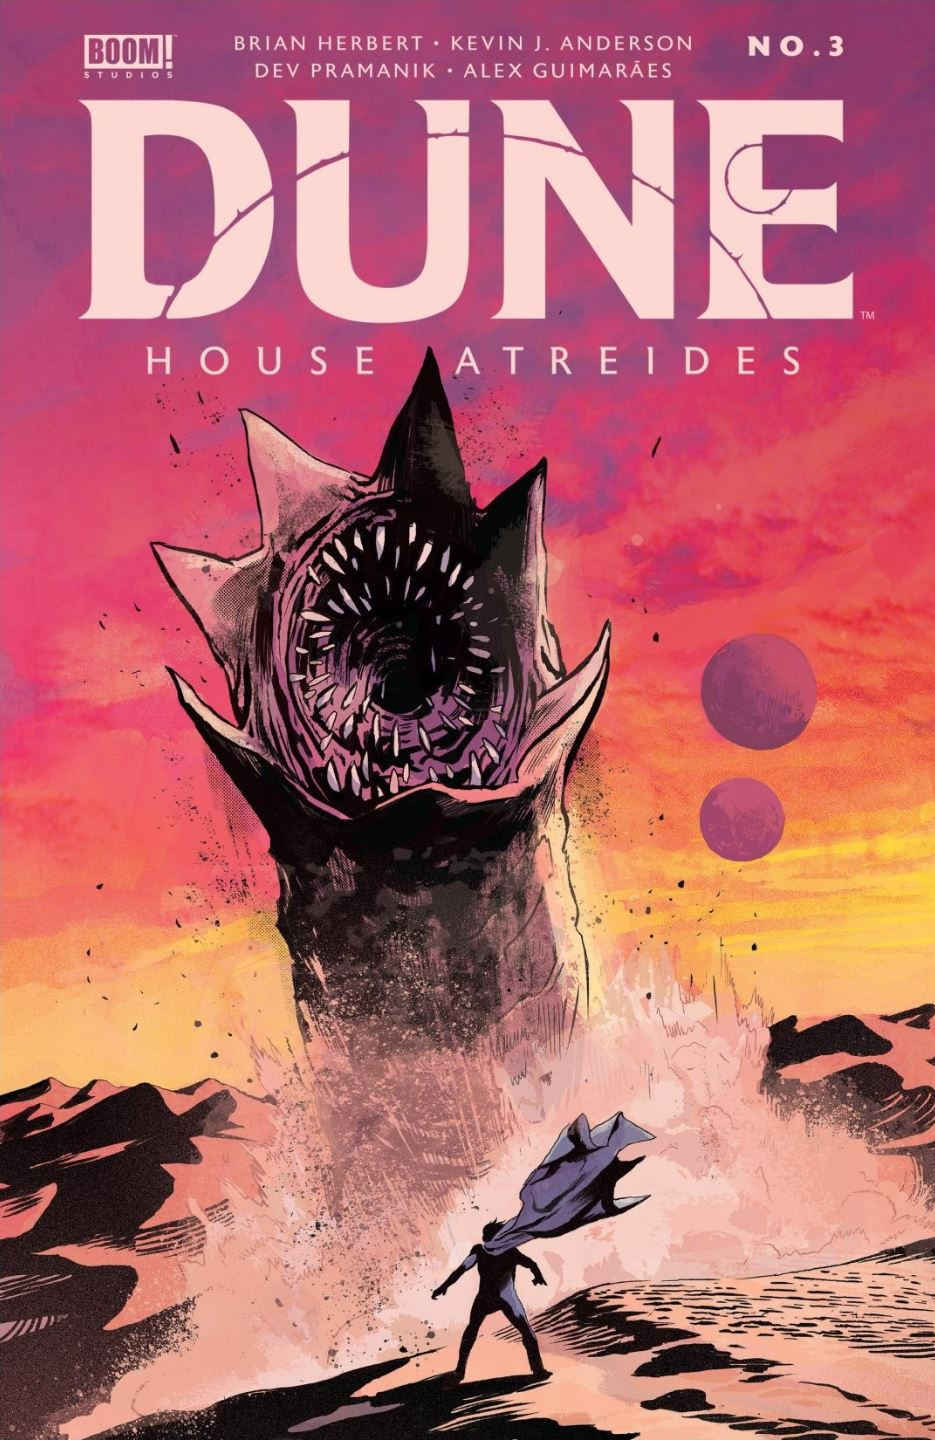 Dune House Atreides issue 3 cover by Michael Walsh